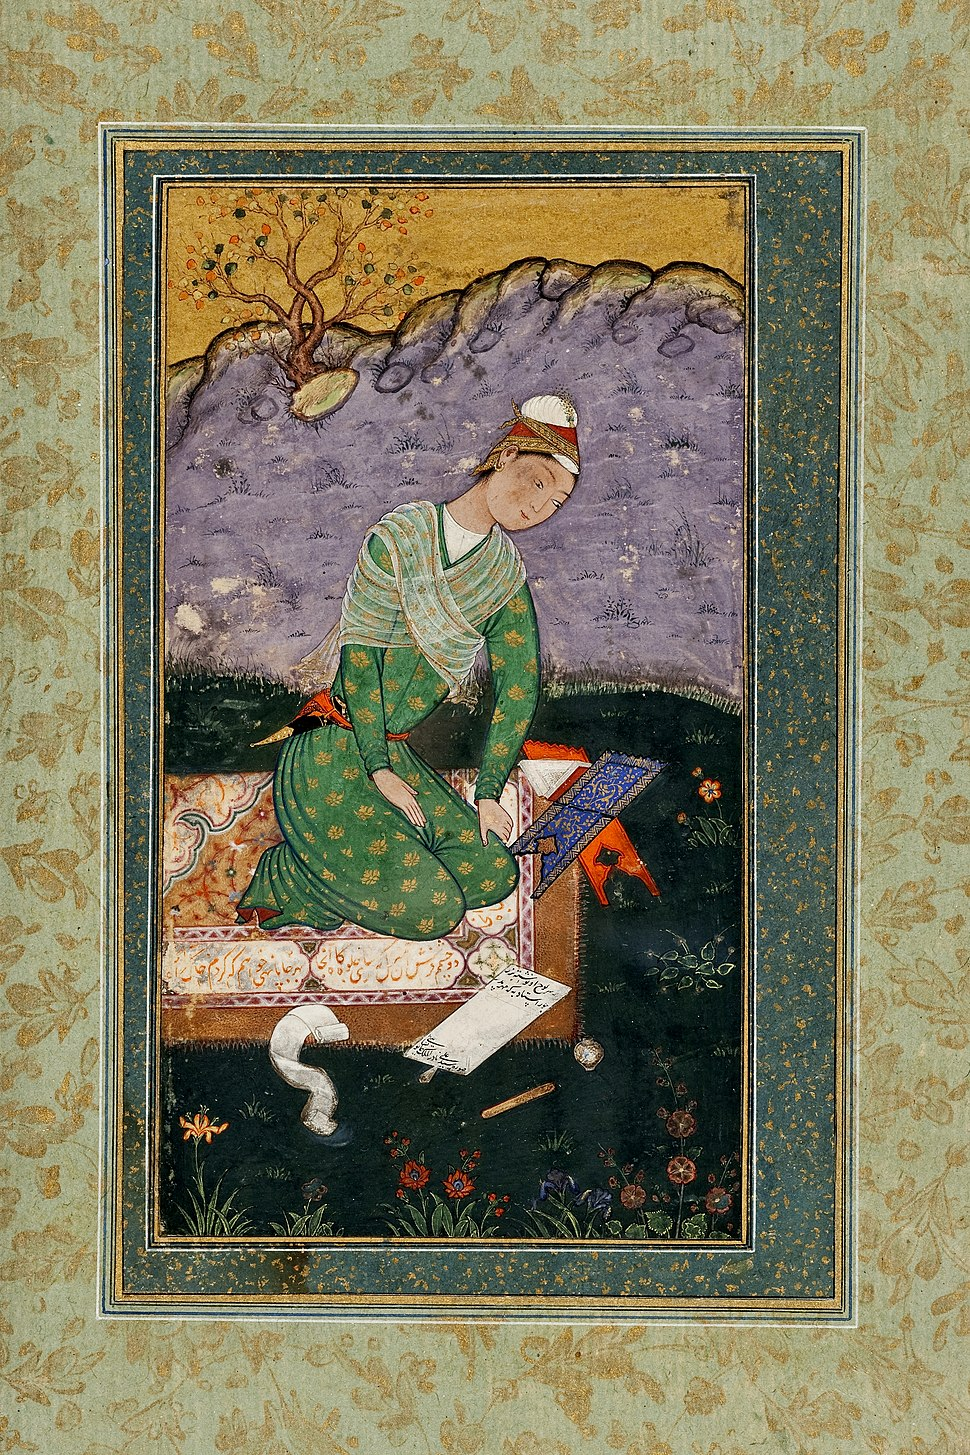 Mir Sayyid Ali - Portrait of a Young Indian Scholar